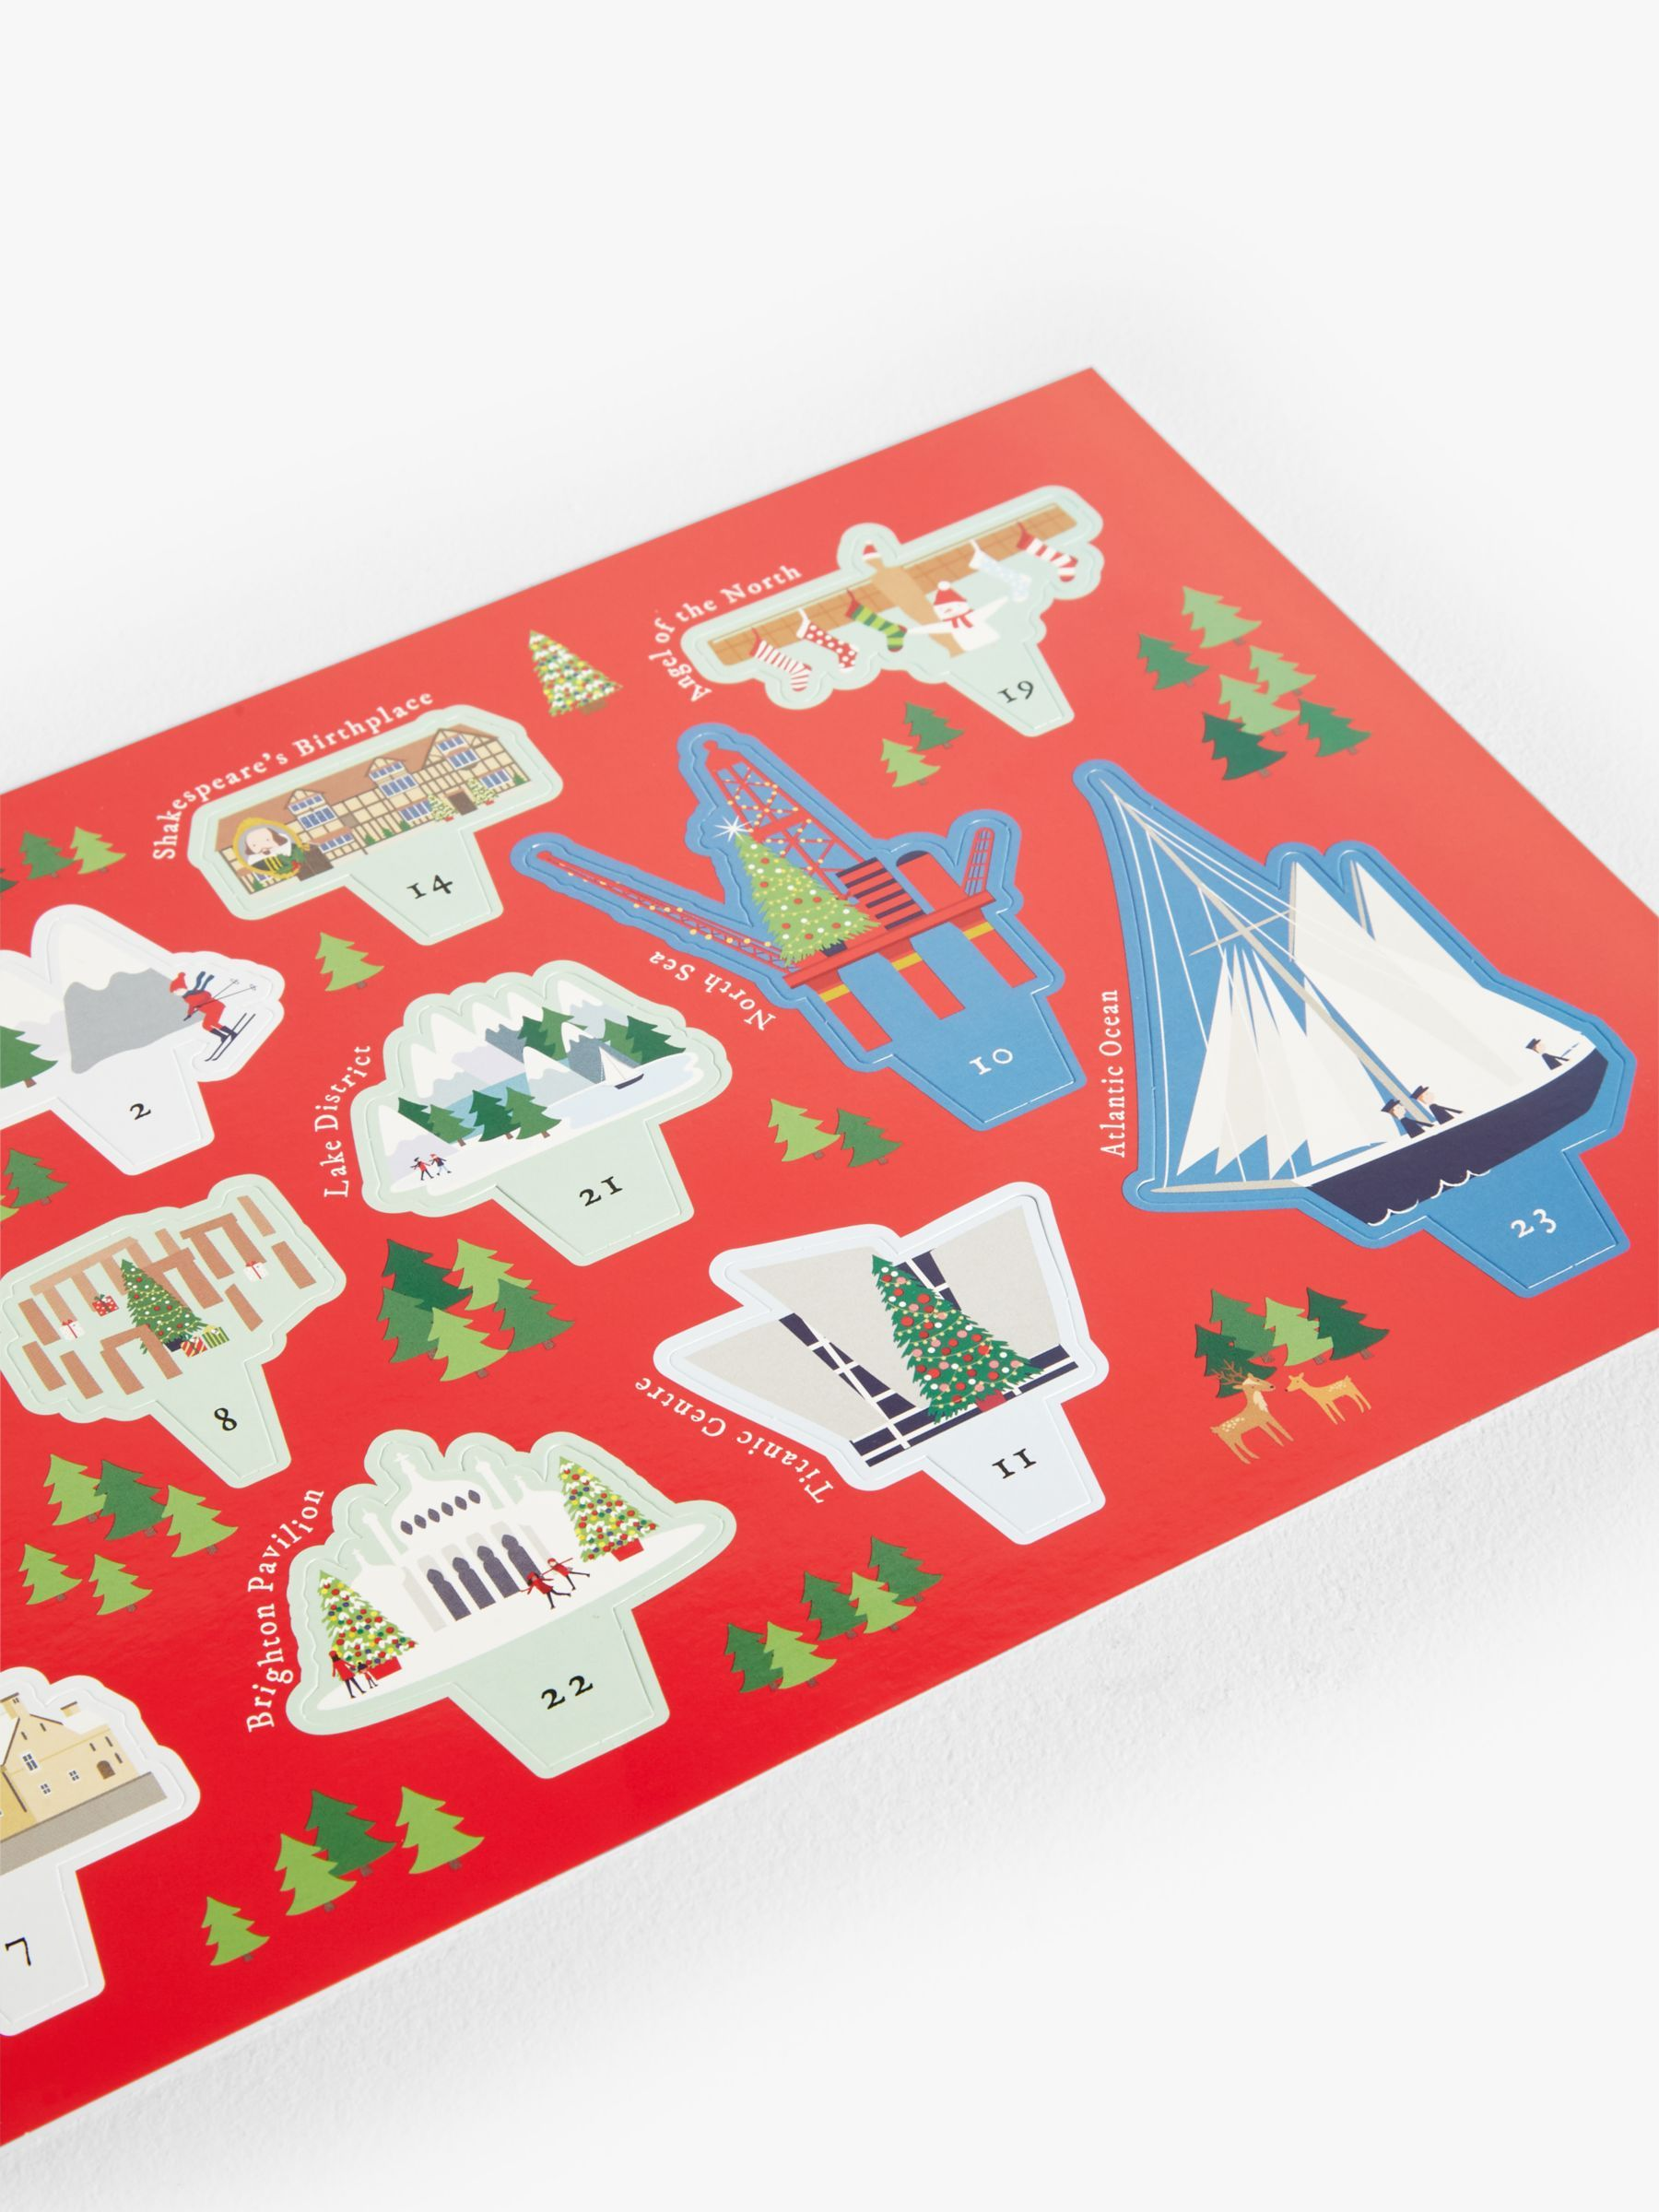 Woodmansterne The British Isles at Christmas Advent Calendar #britishisles